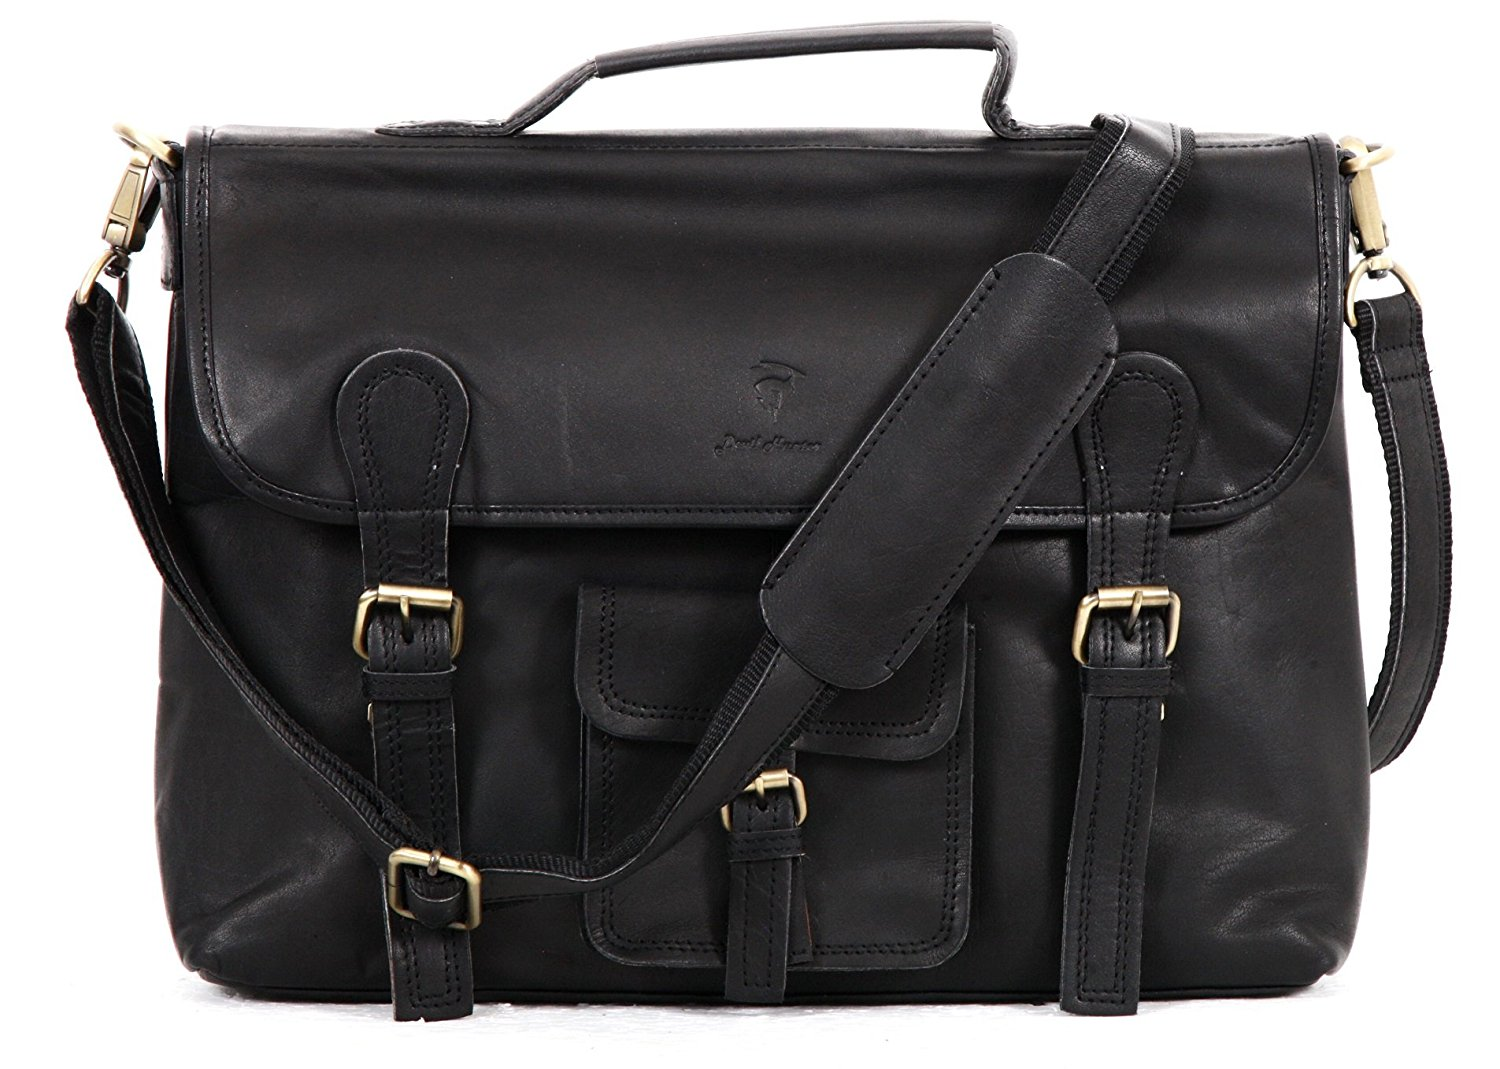 DH Leather Unisex Real Leather Messenger Bag for Laptop Briefcase Satchel ...